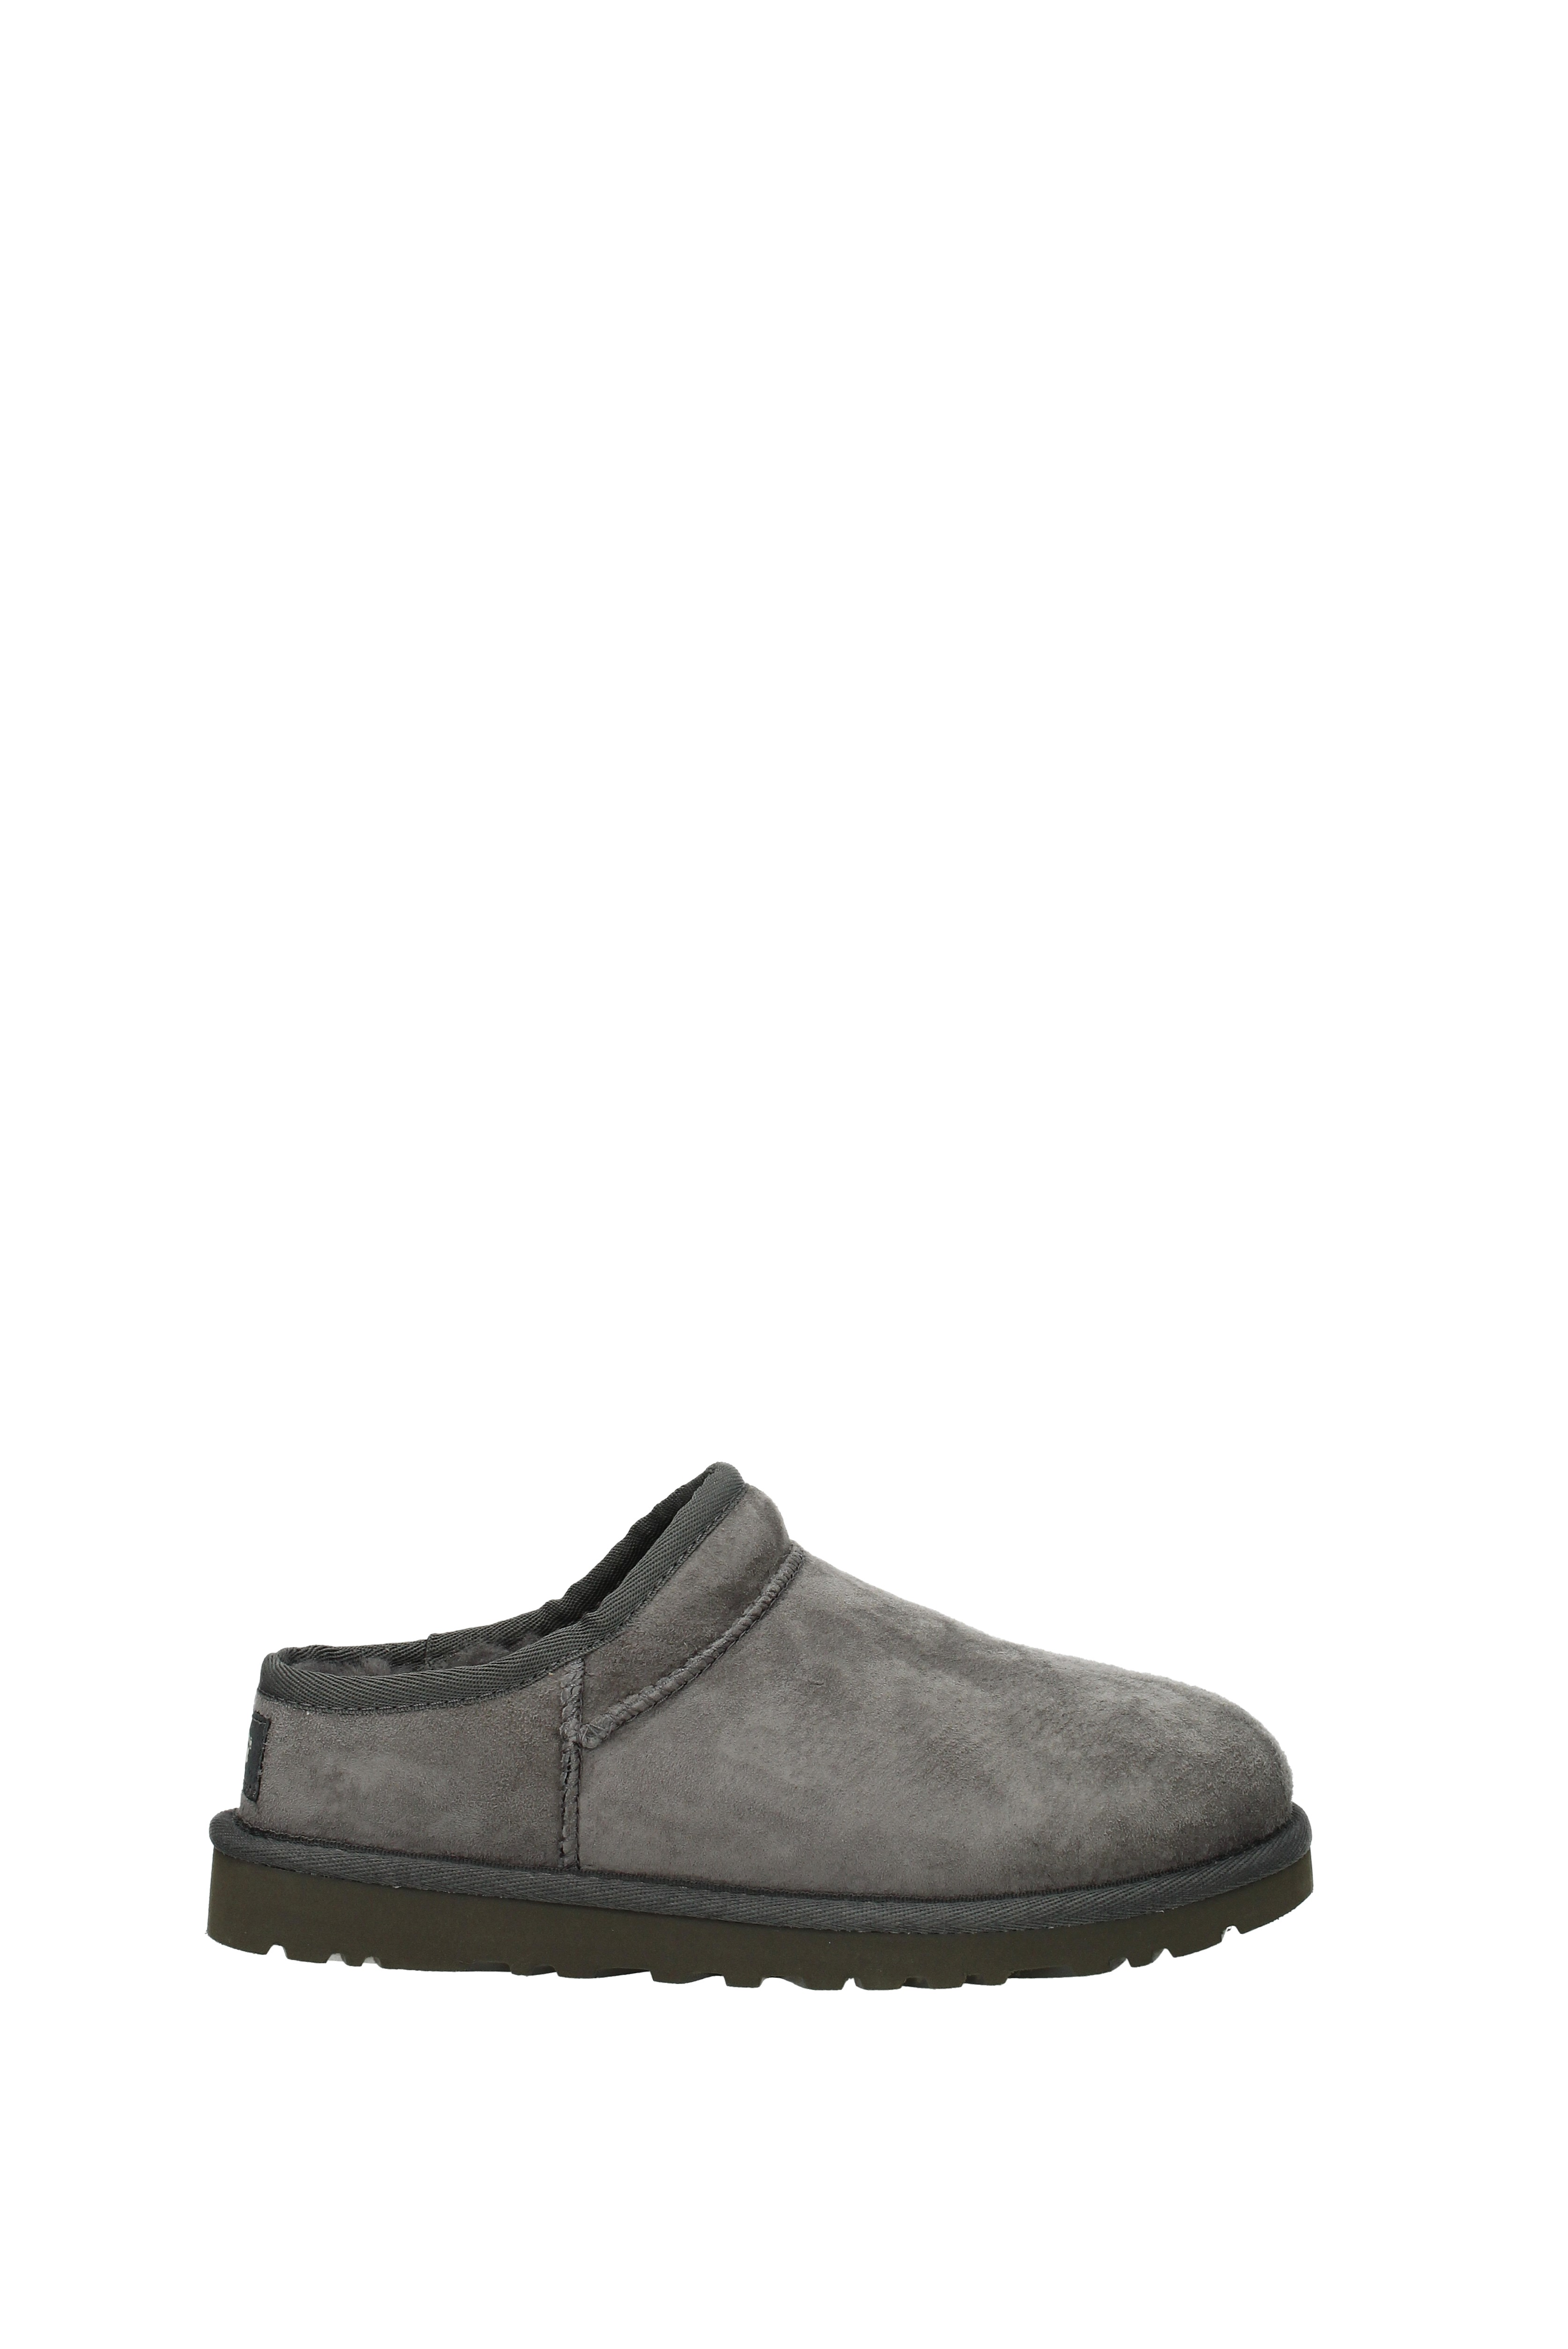 Pantofole-UGG-water-resistant-classic-Donna-Camoscio-1009249